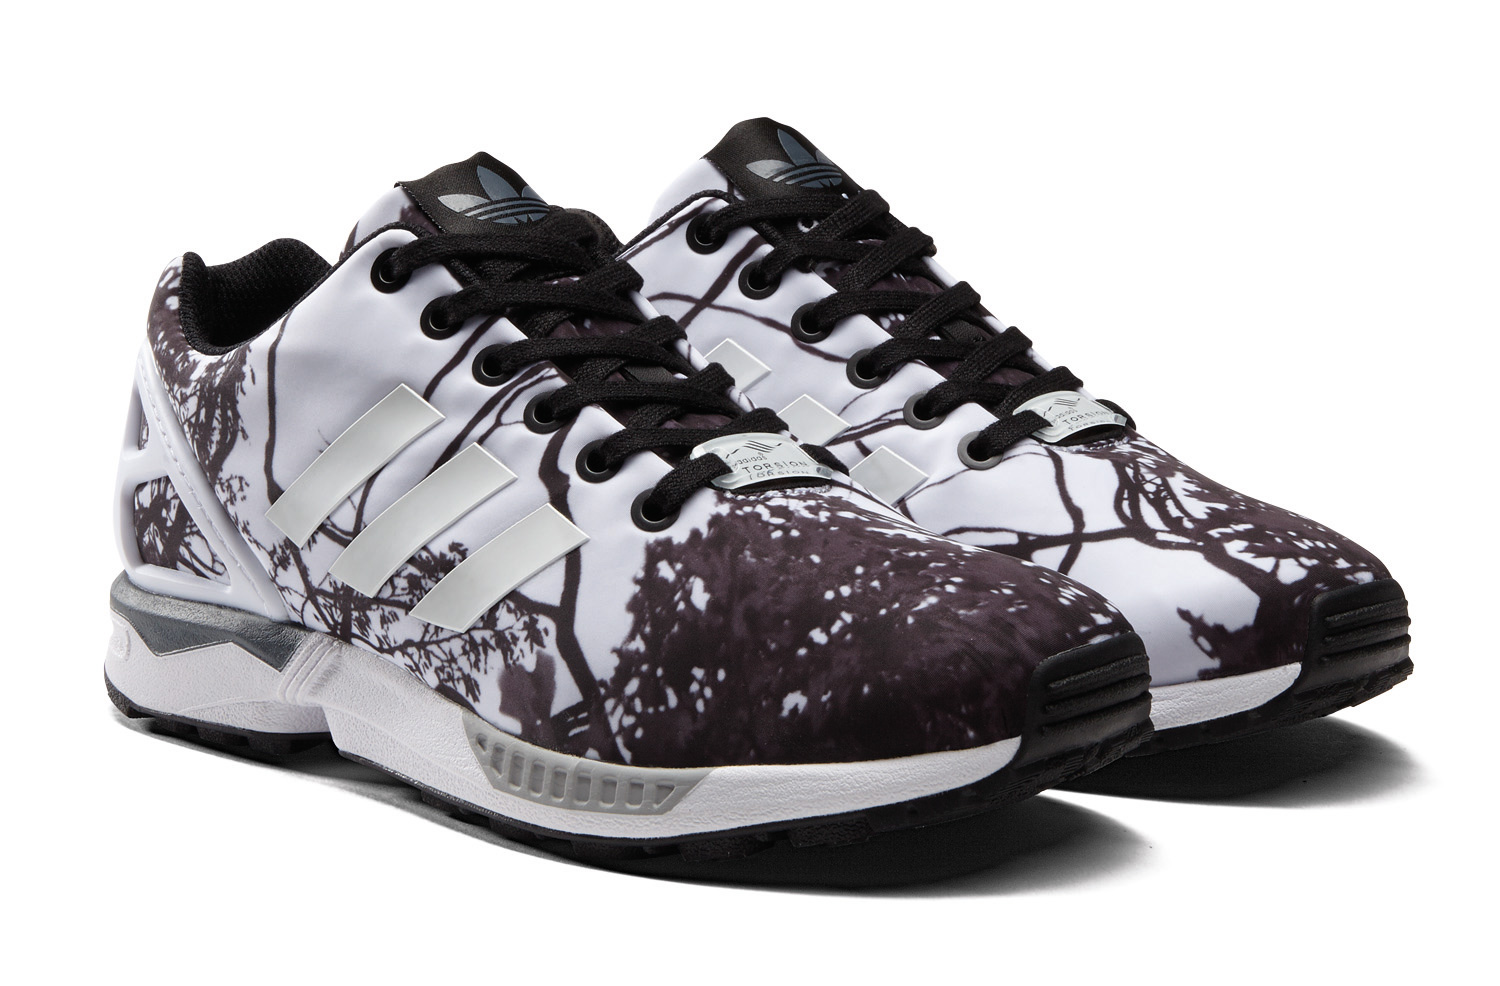 adidas zx flux print pack4 sneakerlover. Black Bedroom Furniture Sets. Home Design Ideas